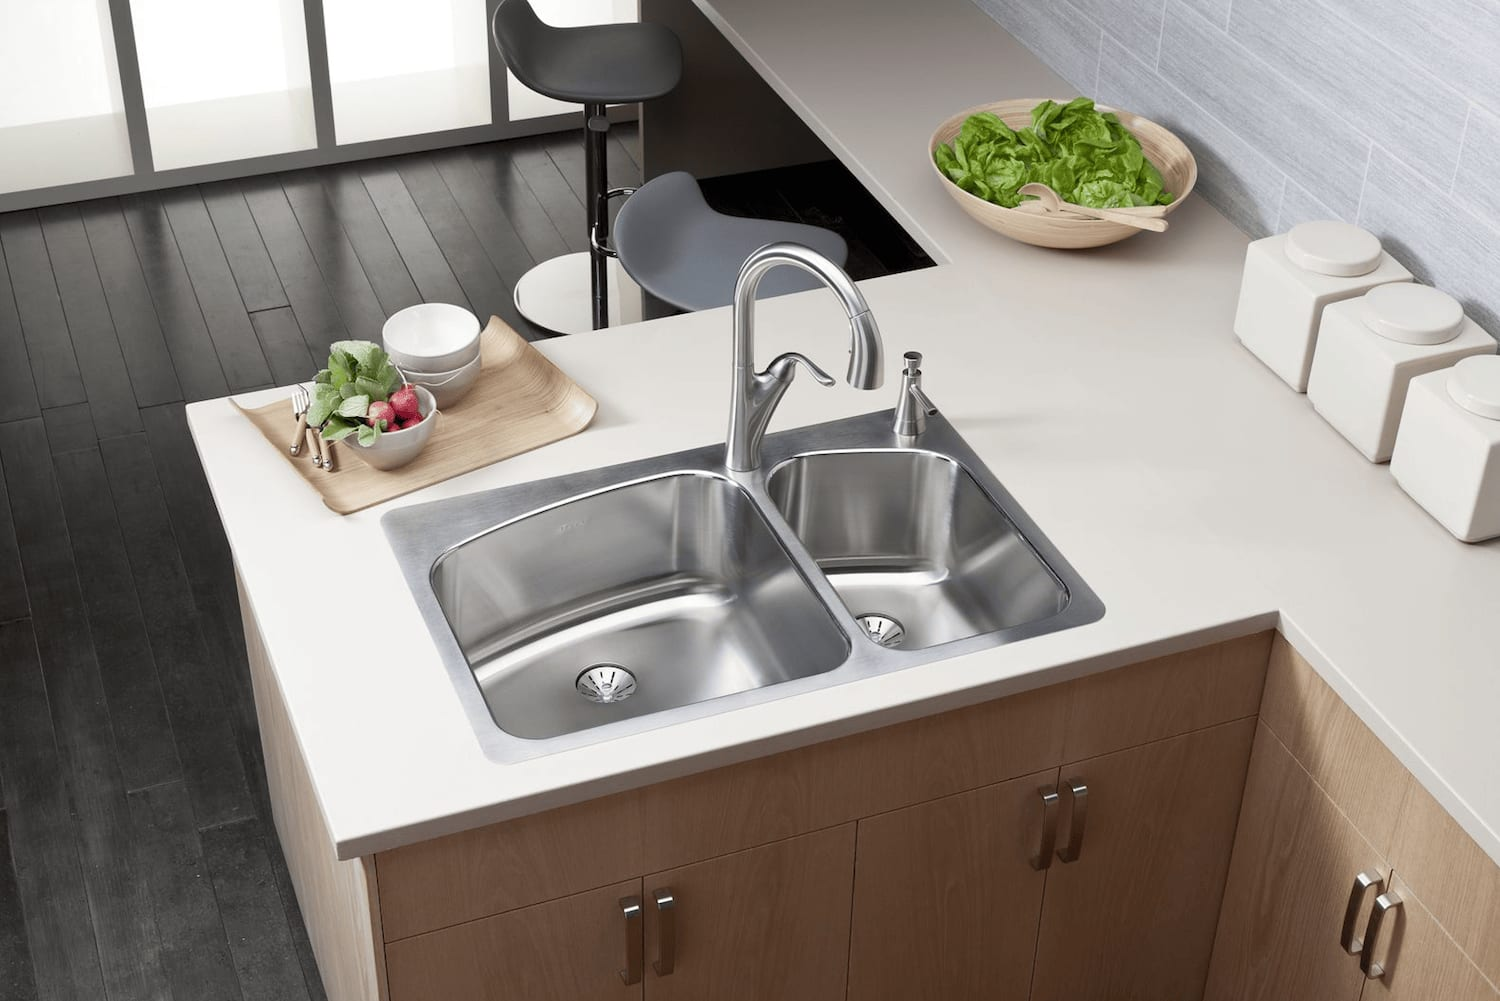 Stainless Kitchen Sink | Stainless Steel Sinks Everything You Need To Know Qualitybath